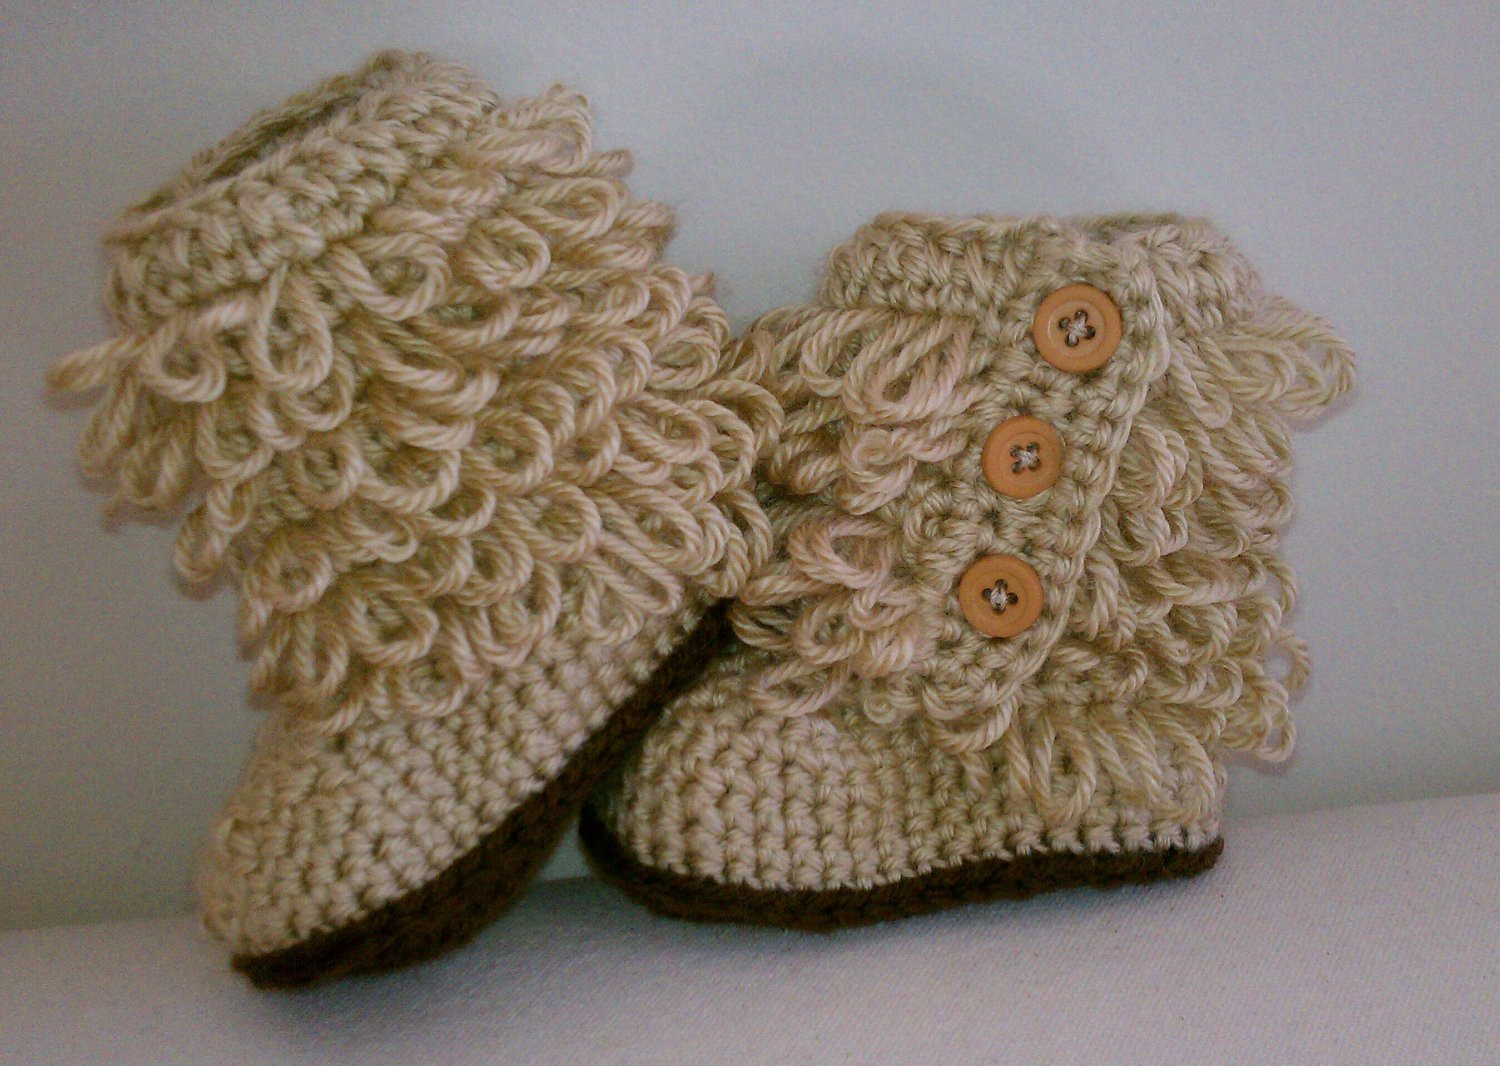 Elegant Crochet Baby Ugg Inspired Boots Booties Tan Fall Winter Baby Crochet Uggs Boots Of New 45 Ideas Crochet Uggs Boots